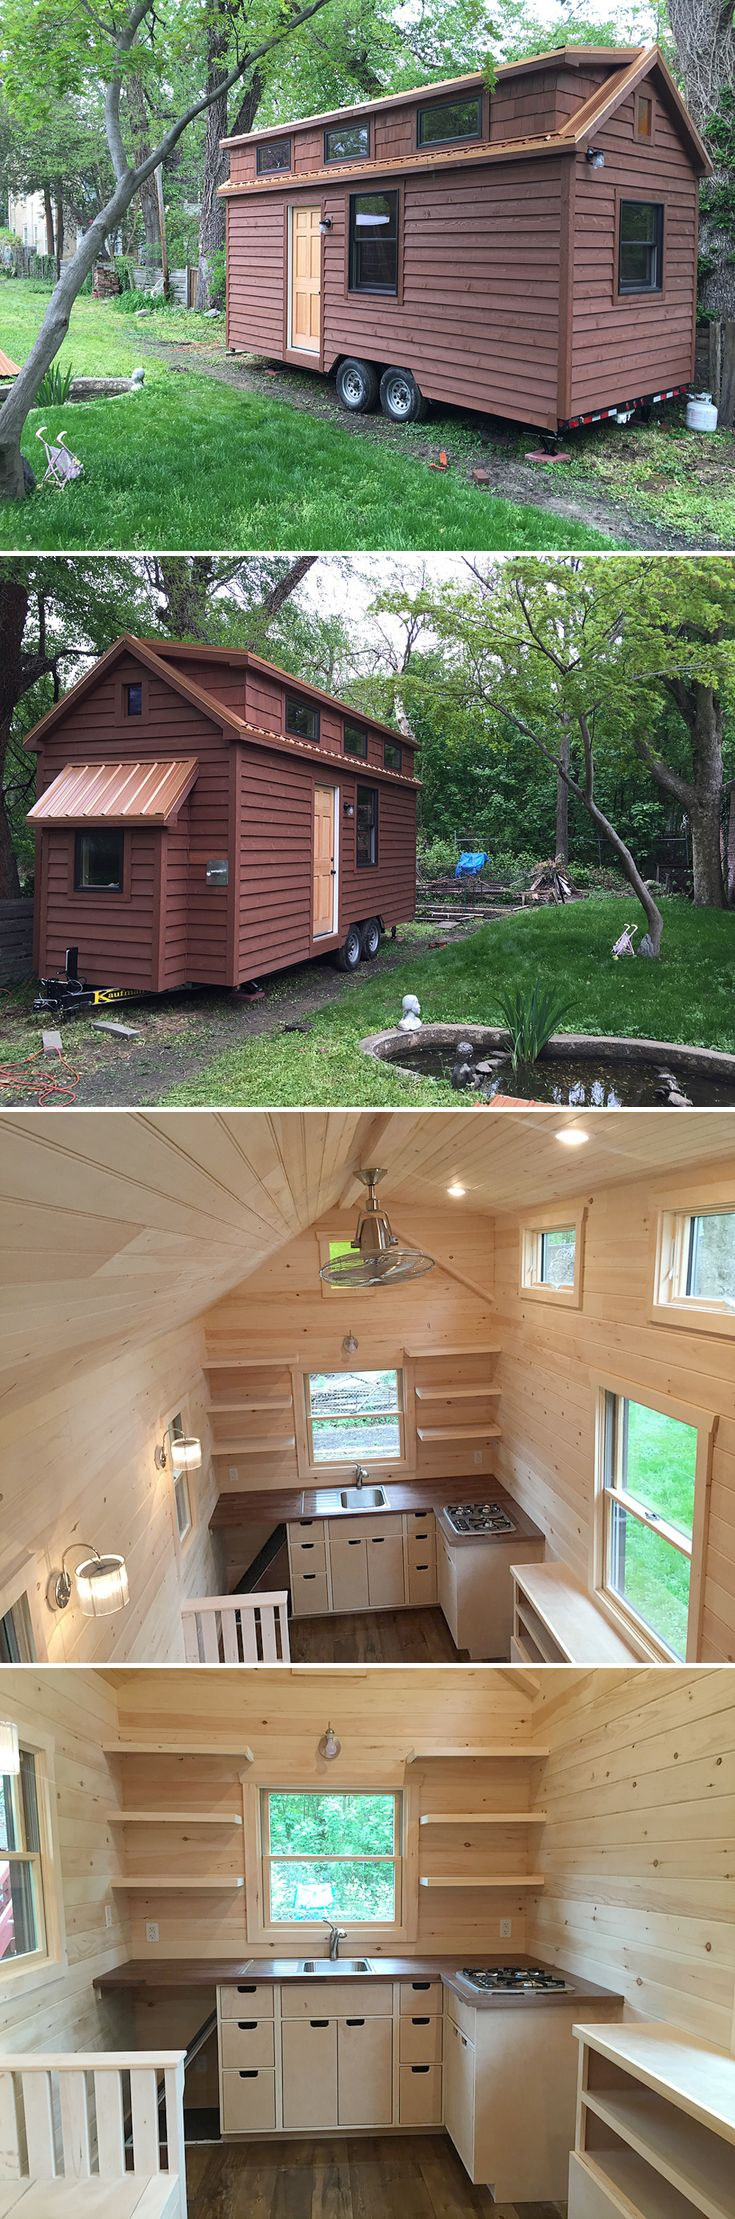 The Brownie tiny house on wheels was designed and built by James Stoltzfus, owner of Liberation Tiny Homes in Ephrata, Pennsylvania.